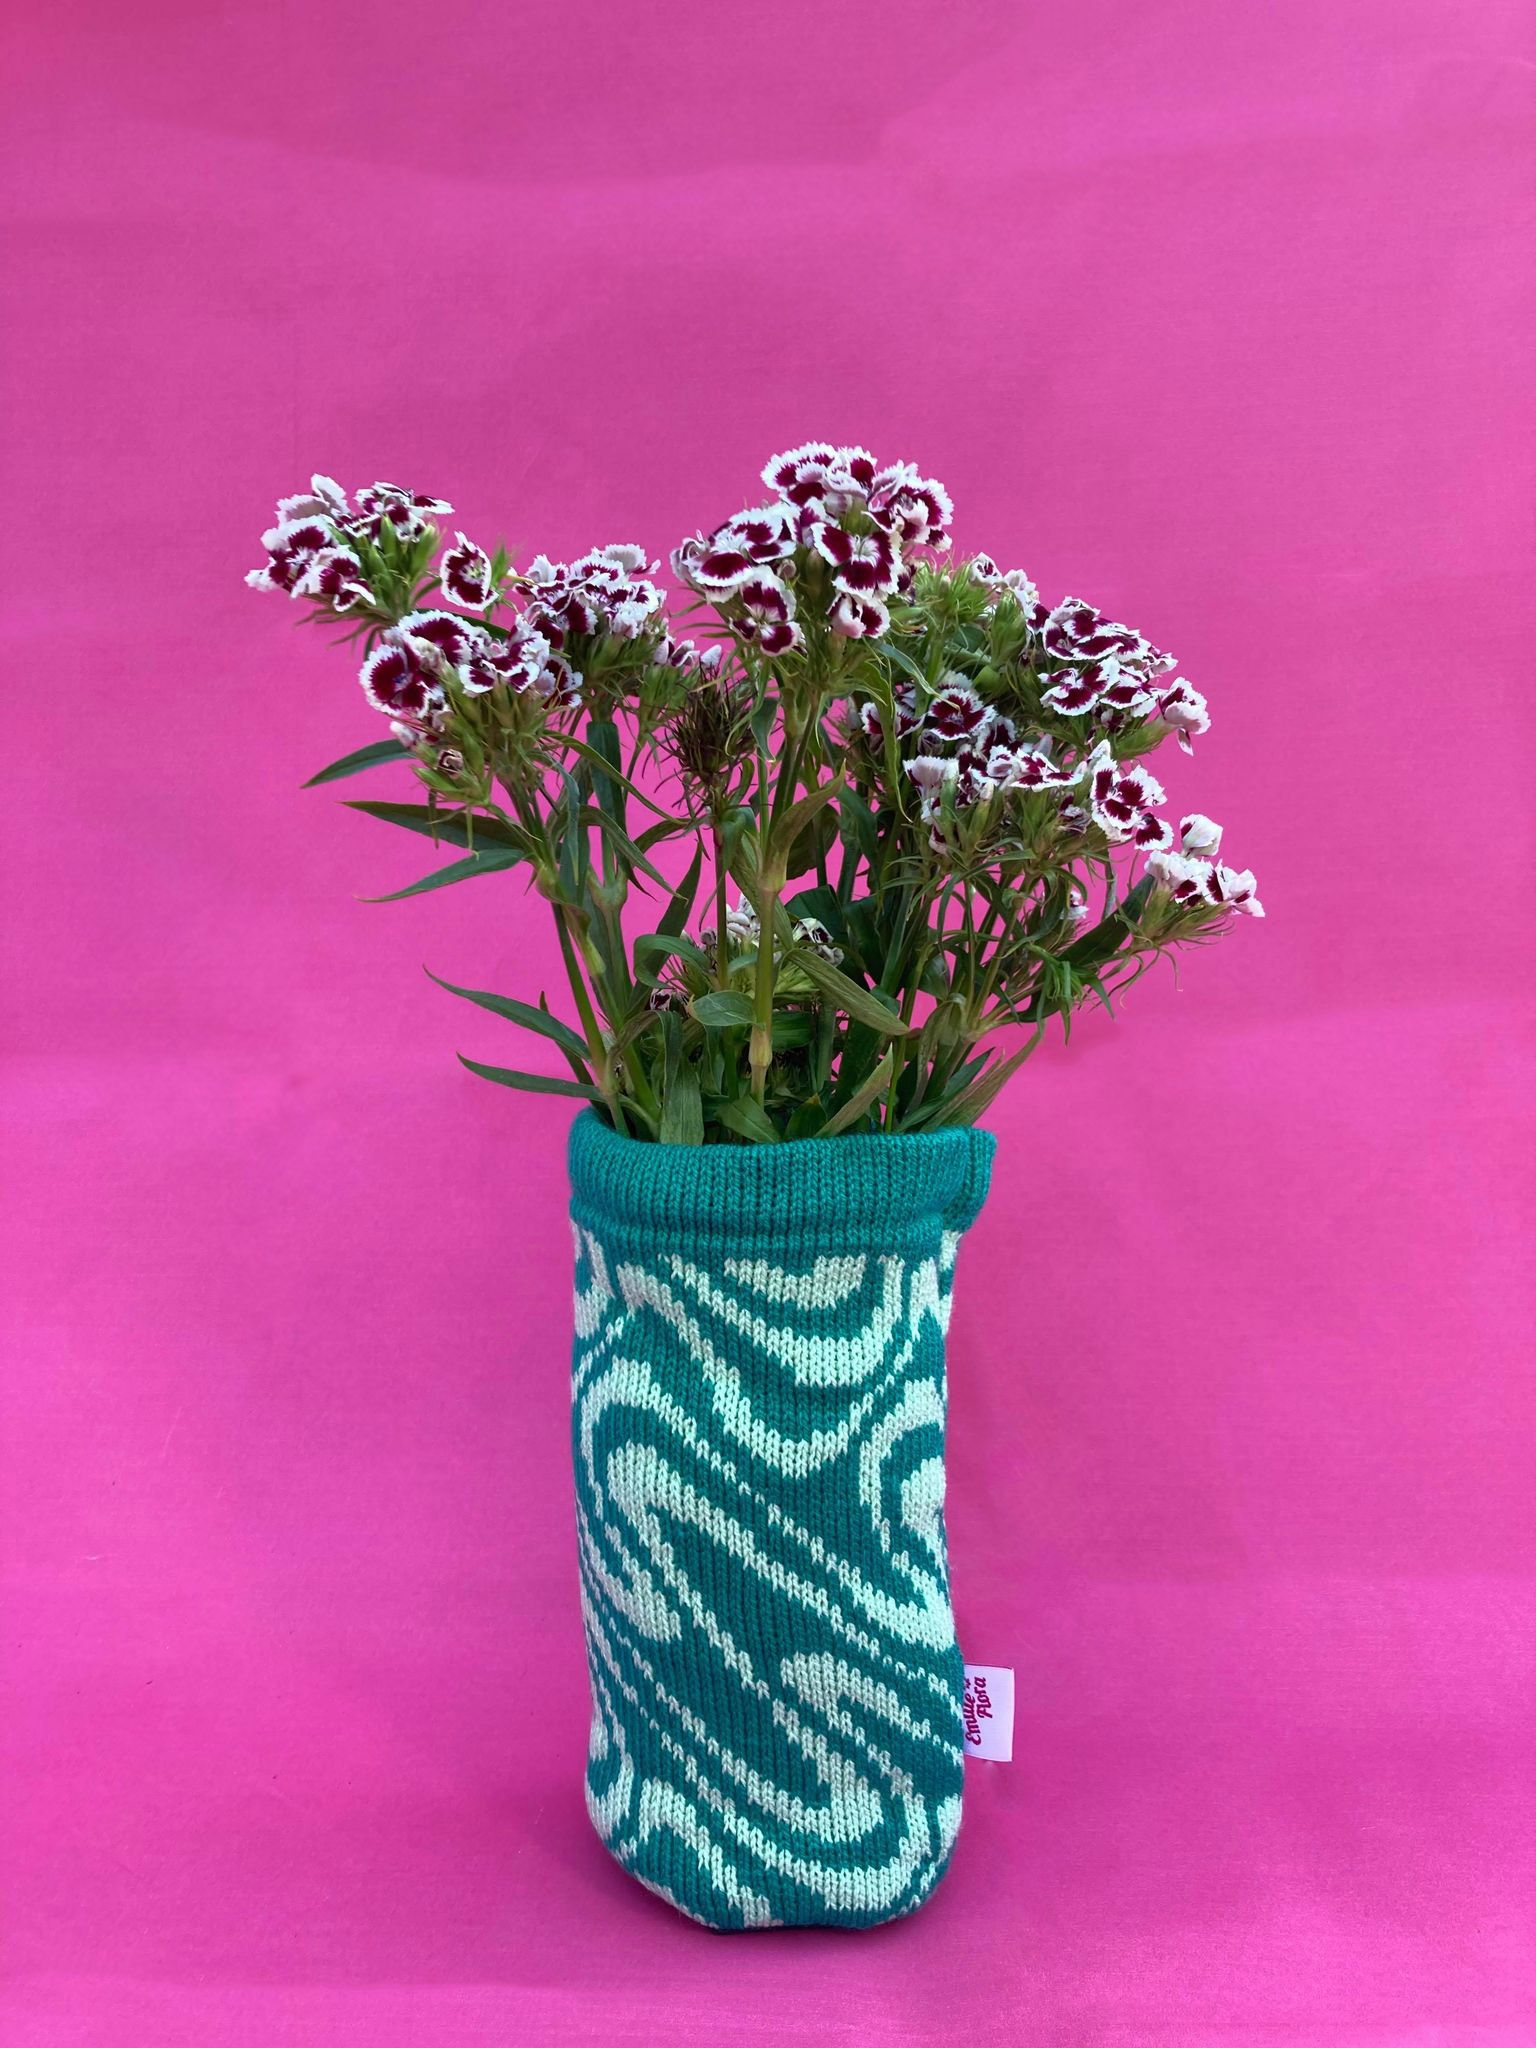 Swirly Vase Cover - Teal and Mint